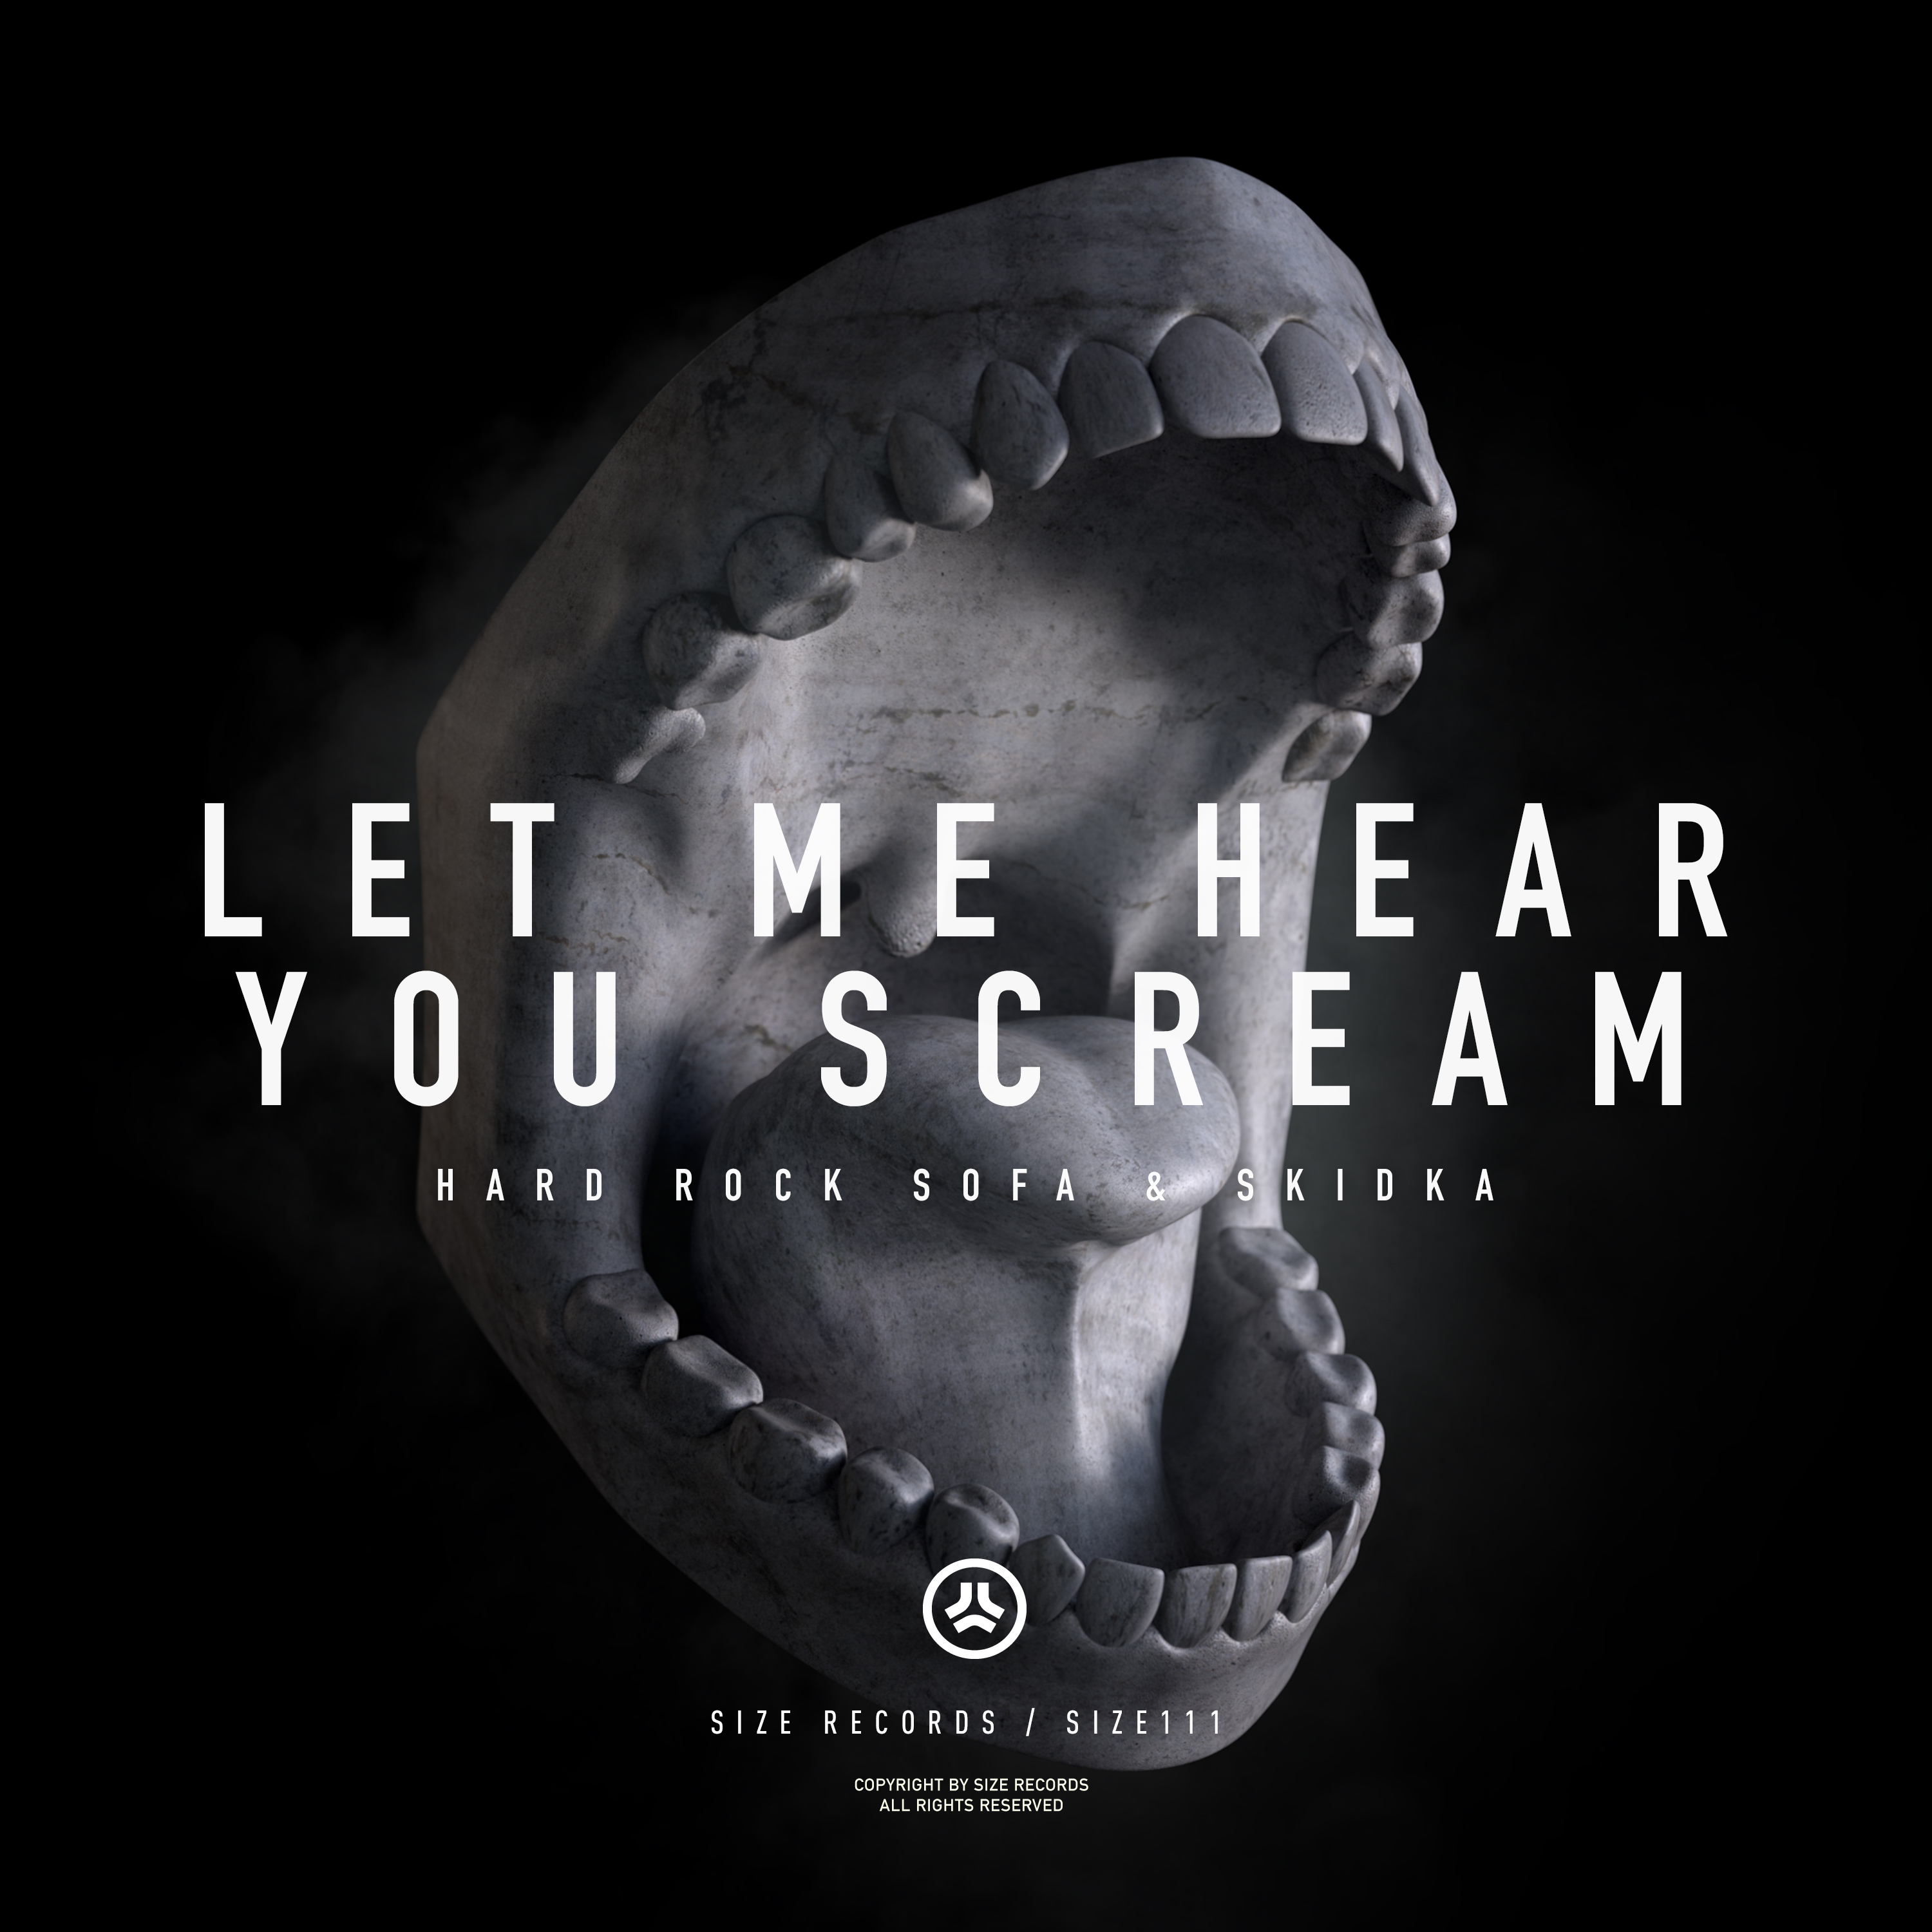 Hard Rock Sofa & Skidka - Let Me Hear Your Scream (Original Mix)